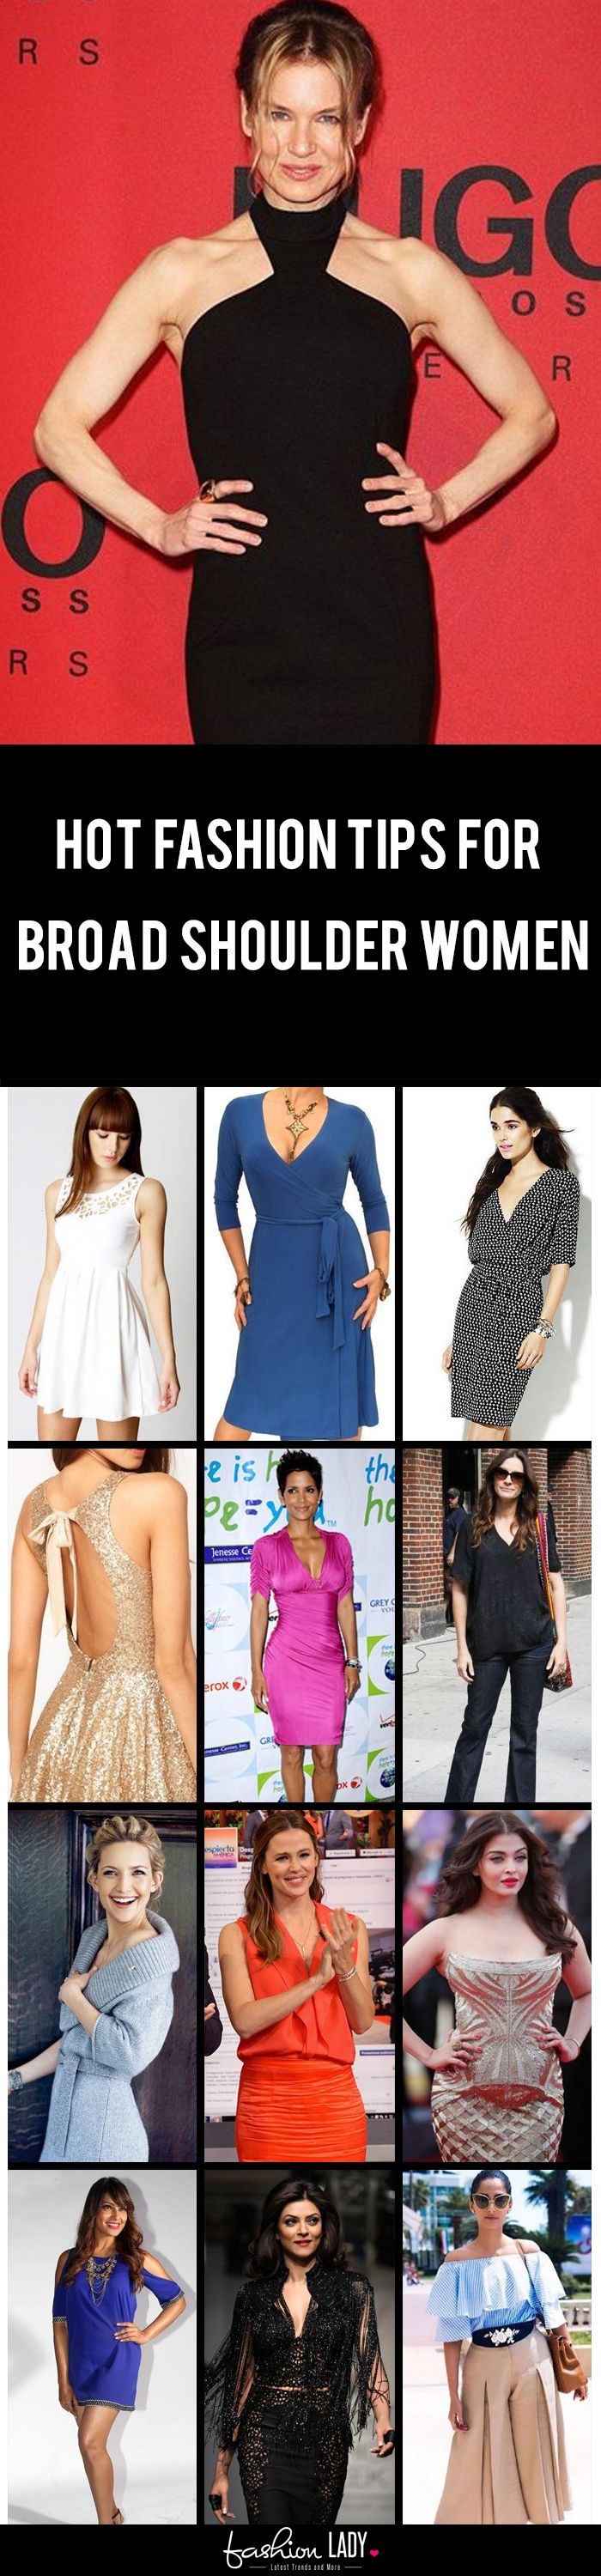 a6ad4c1b81b0 22 Fashion Tips for Broad Shoulder Women - How To Reduce Broad ...